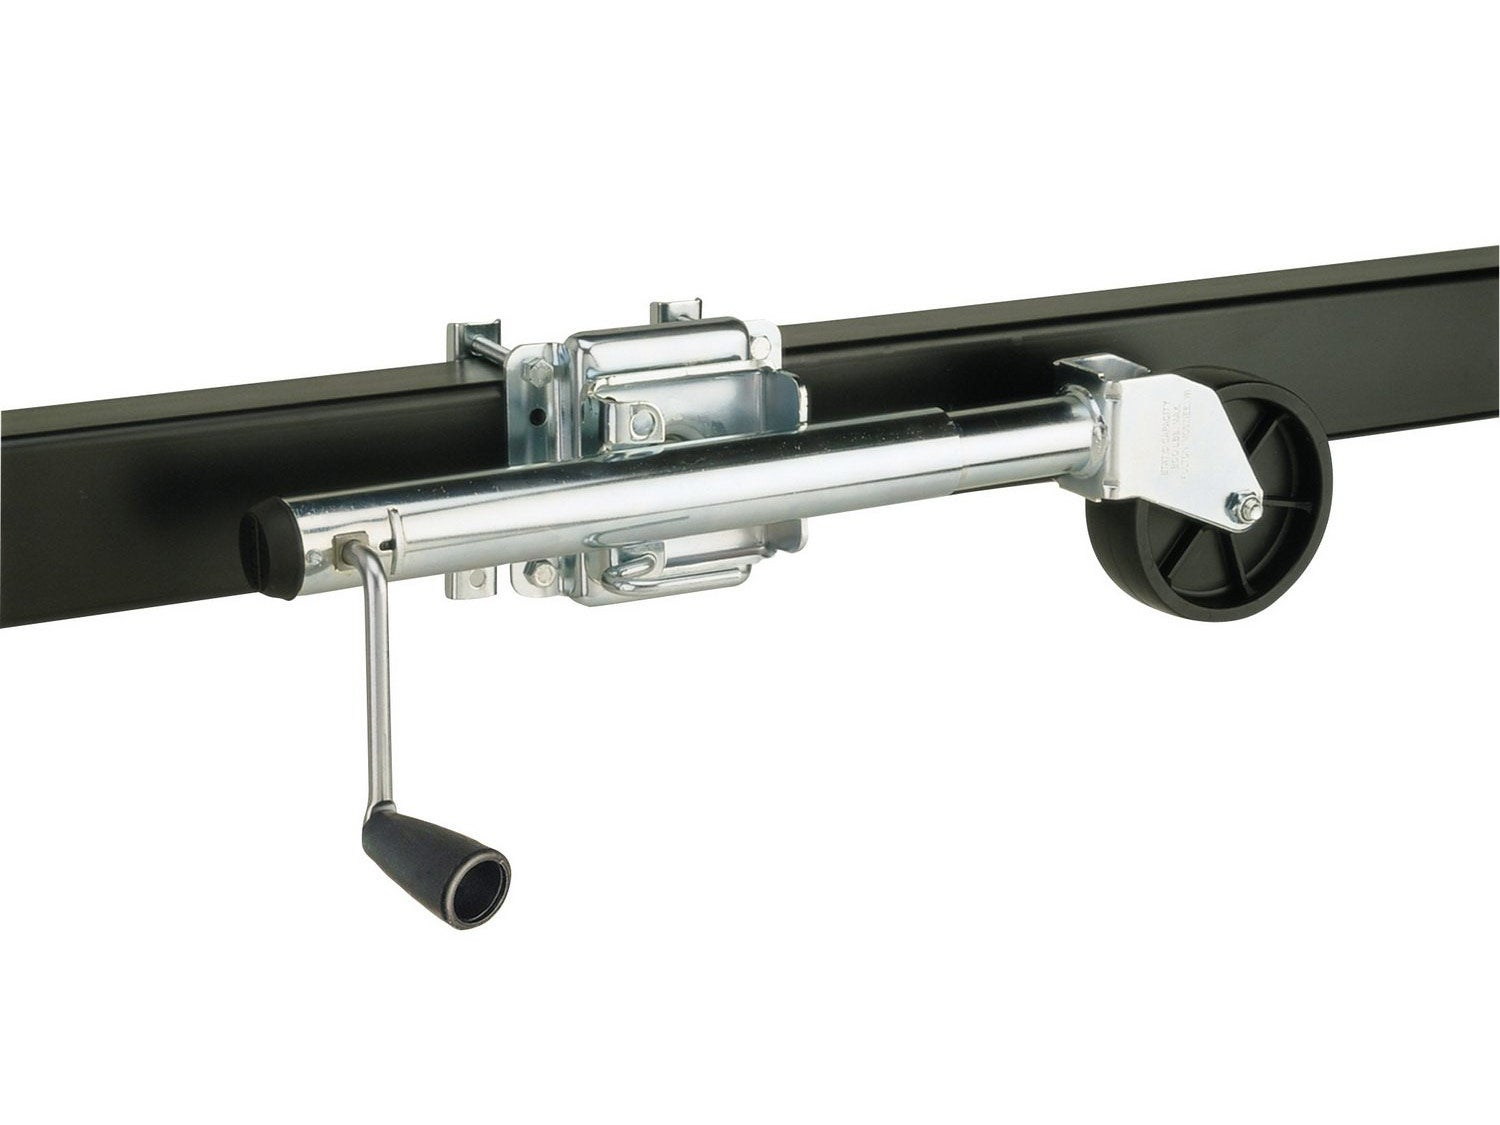 REESE Towpower 74410 Trailer Jack